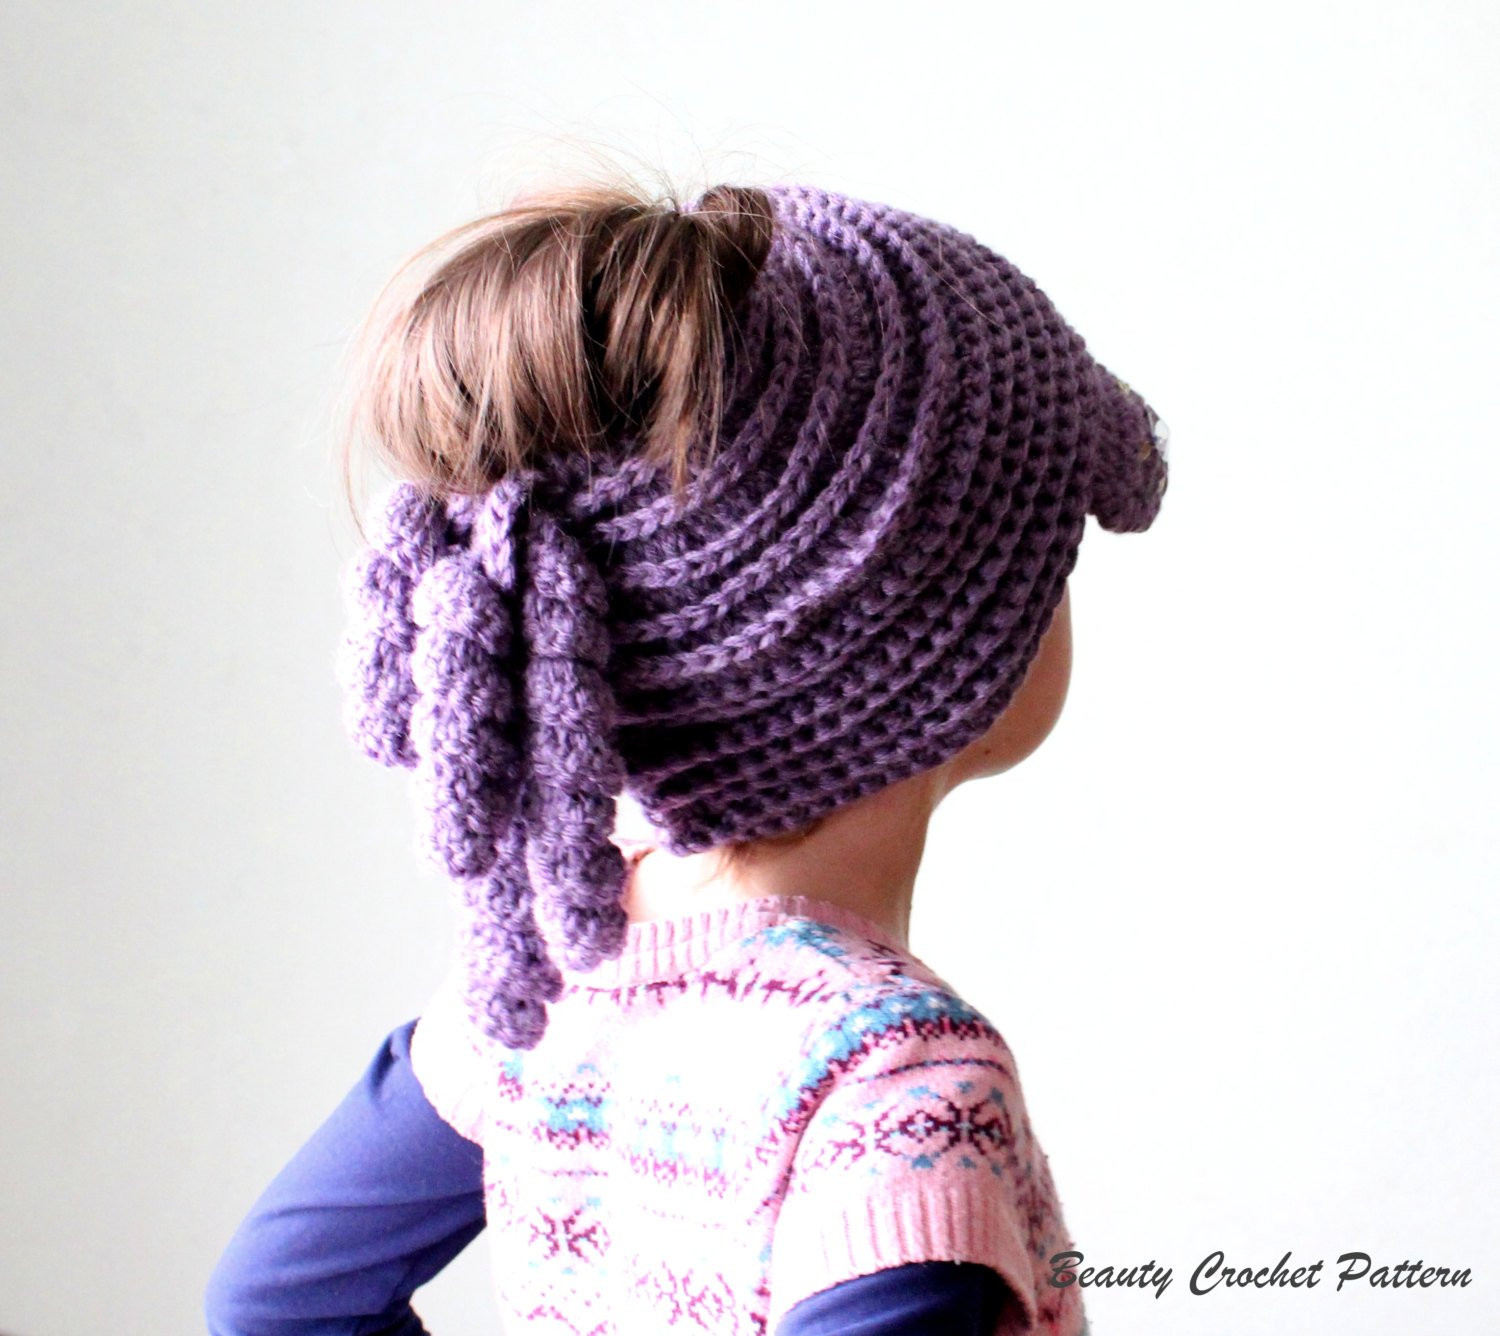 Crochet Messy Bun Beanie Best Of Messy Bun Hat Crochet Pattern Messy Bun Hat Messy Bun Beanie Of New 43 Photos Crochet Messy Bun Beanie